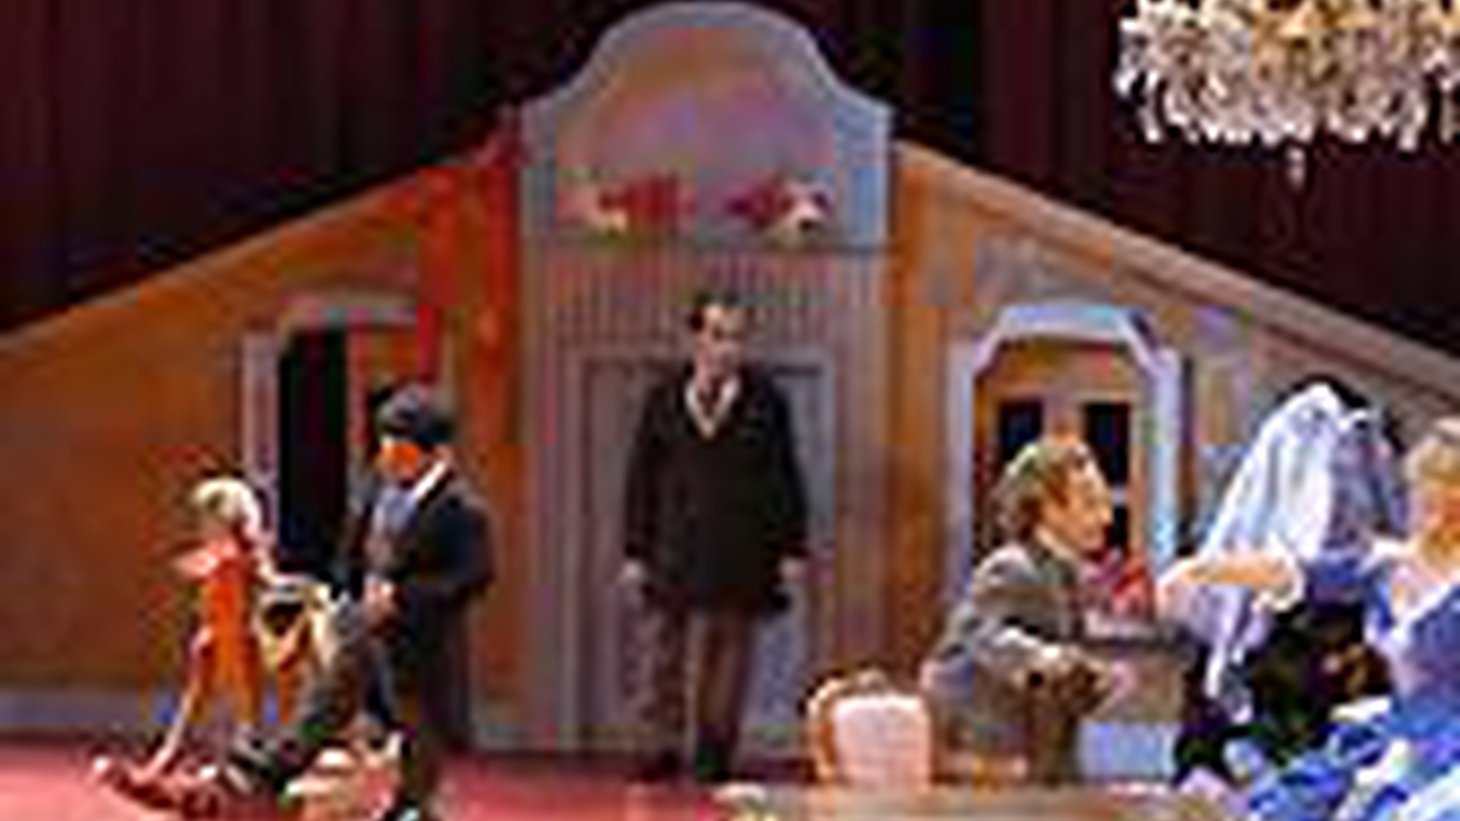 """Today's theater directors love big gimmicks.  But too often, once a stage auteur has set King Lear on a Spaceship, or Uncle Vanya in a cancer ward, there's not much else for the director to do.  The big gimmick in the reworking of A Doll's House (now playing at UCLA Live!) is that the set is miniature size... and so are some of the actors.  You see, in this version of Ibsen's classic drama, the men are all played by """"little people""""..."""